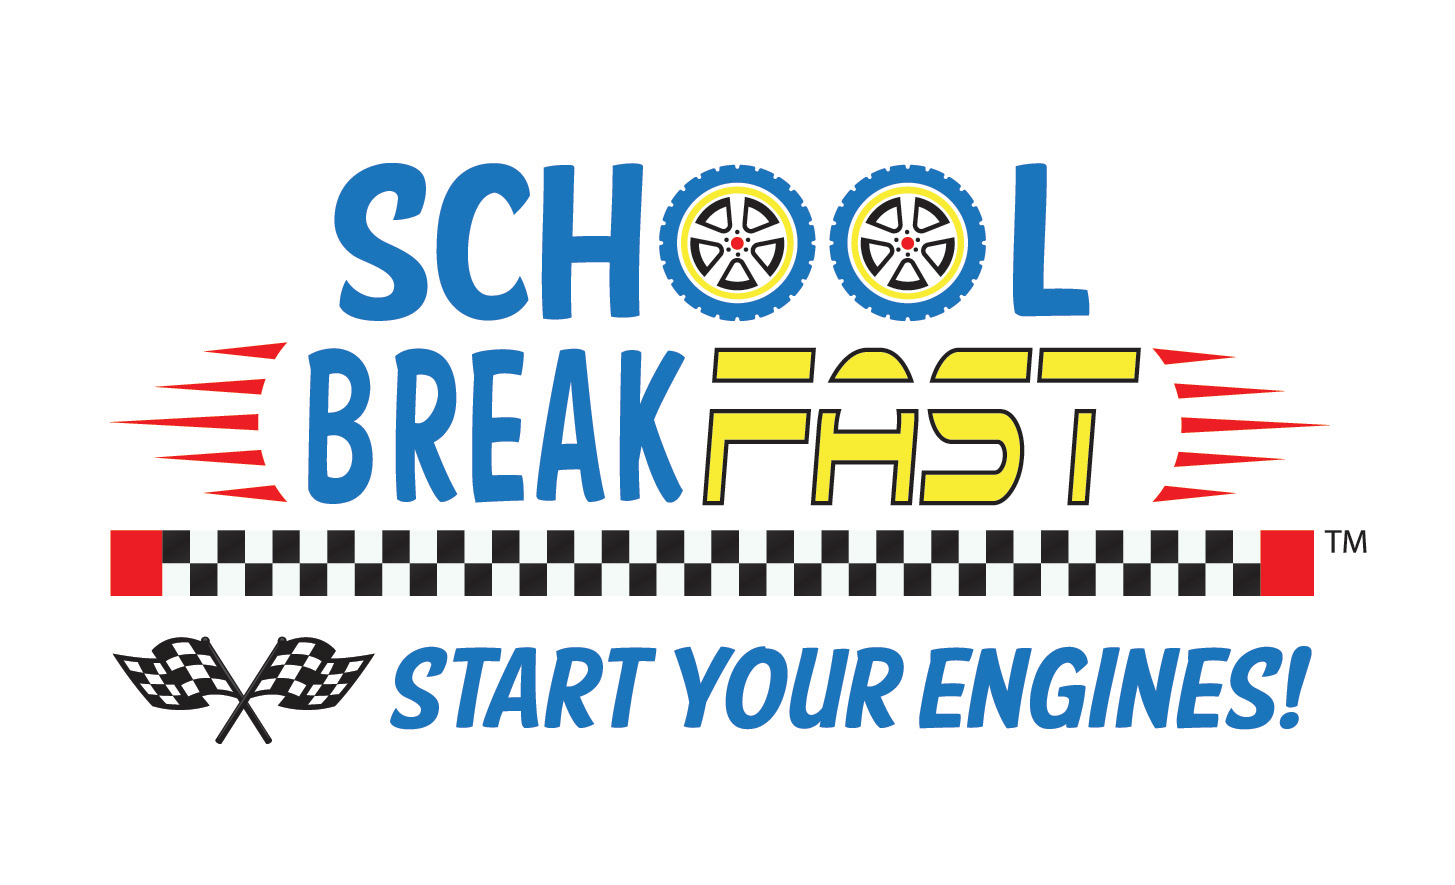 """Start Your Engines"" is this year's theme for National School Breakfast Week and the goal of the campaign is to encourage more families to take advantage of the healthy choices available for school breakfast. Many district schools across the U.S. will be celebrating National School Breakfast week with special menus, cafeteria events and more."